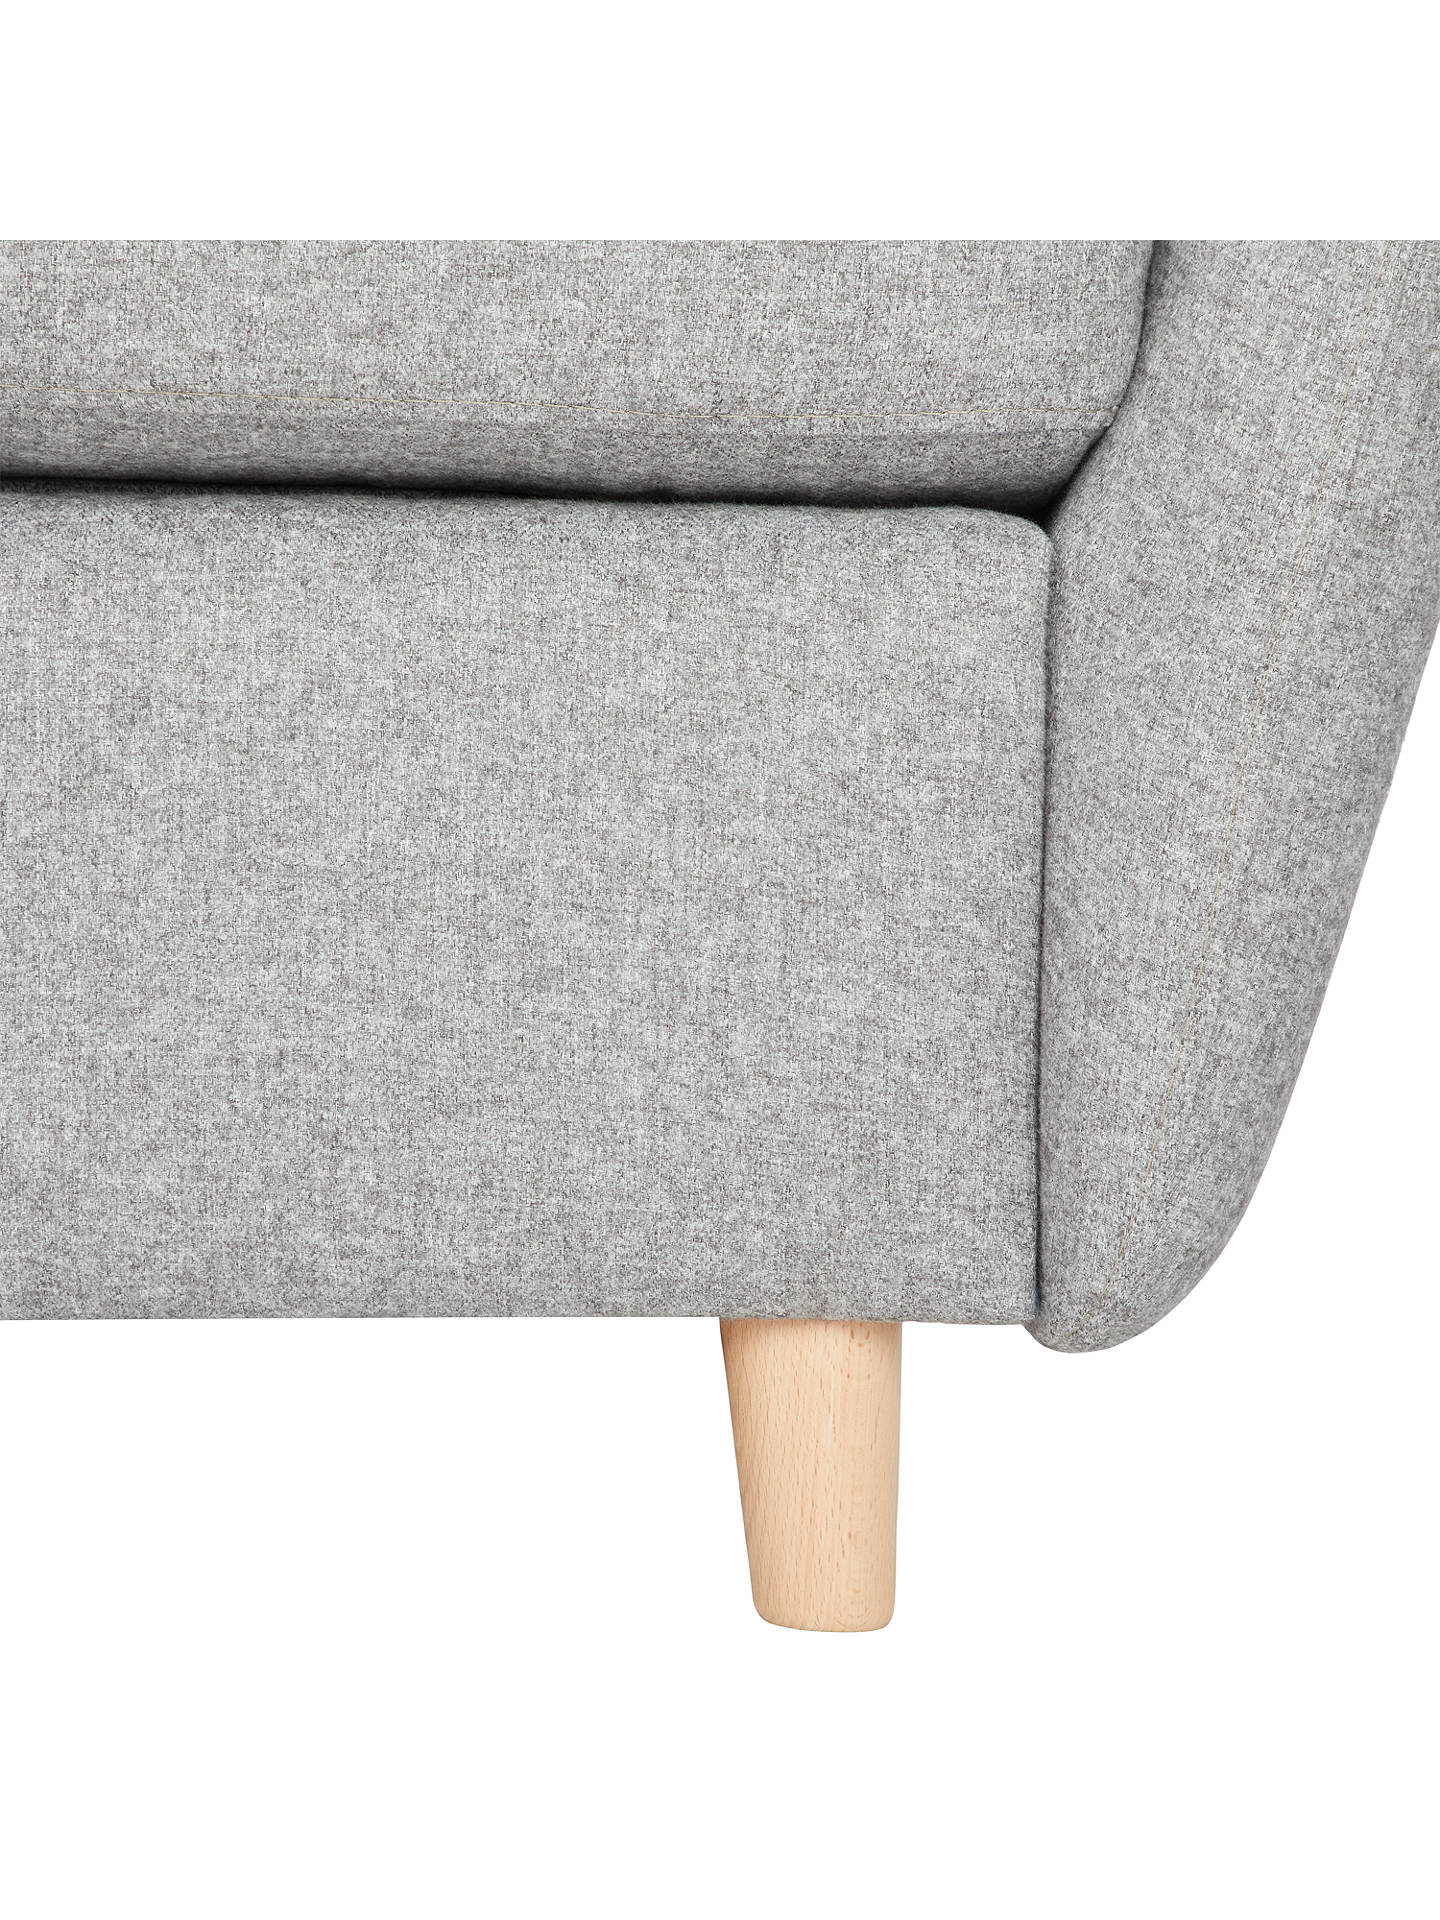 Prime House By John Lewis Arlo Lhf Chaise With Storage Sofa Bed Light Leg Squirreltailoven Fun Painted Chair Ideas Images Squirreltailovenorg